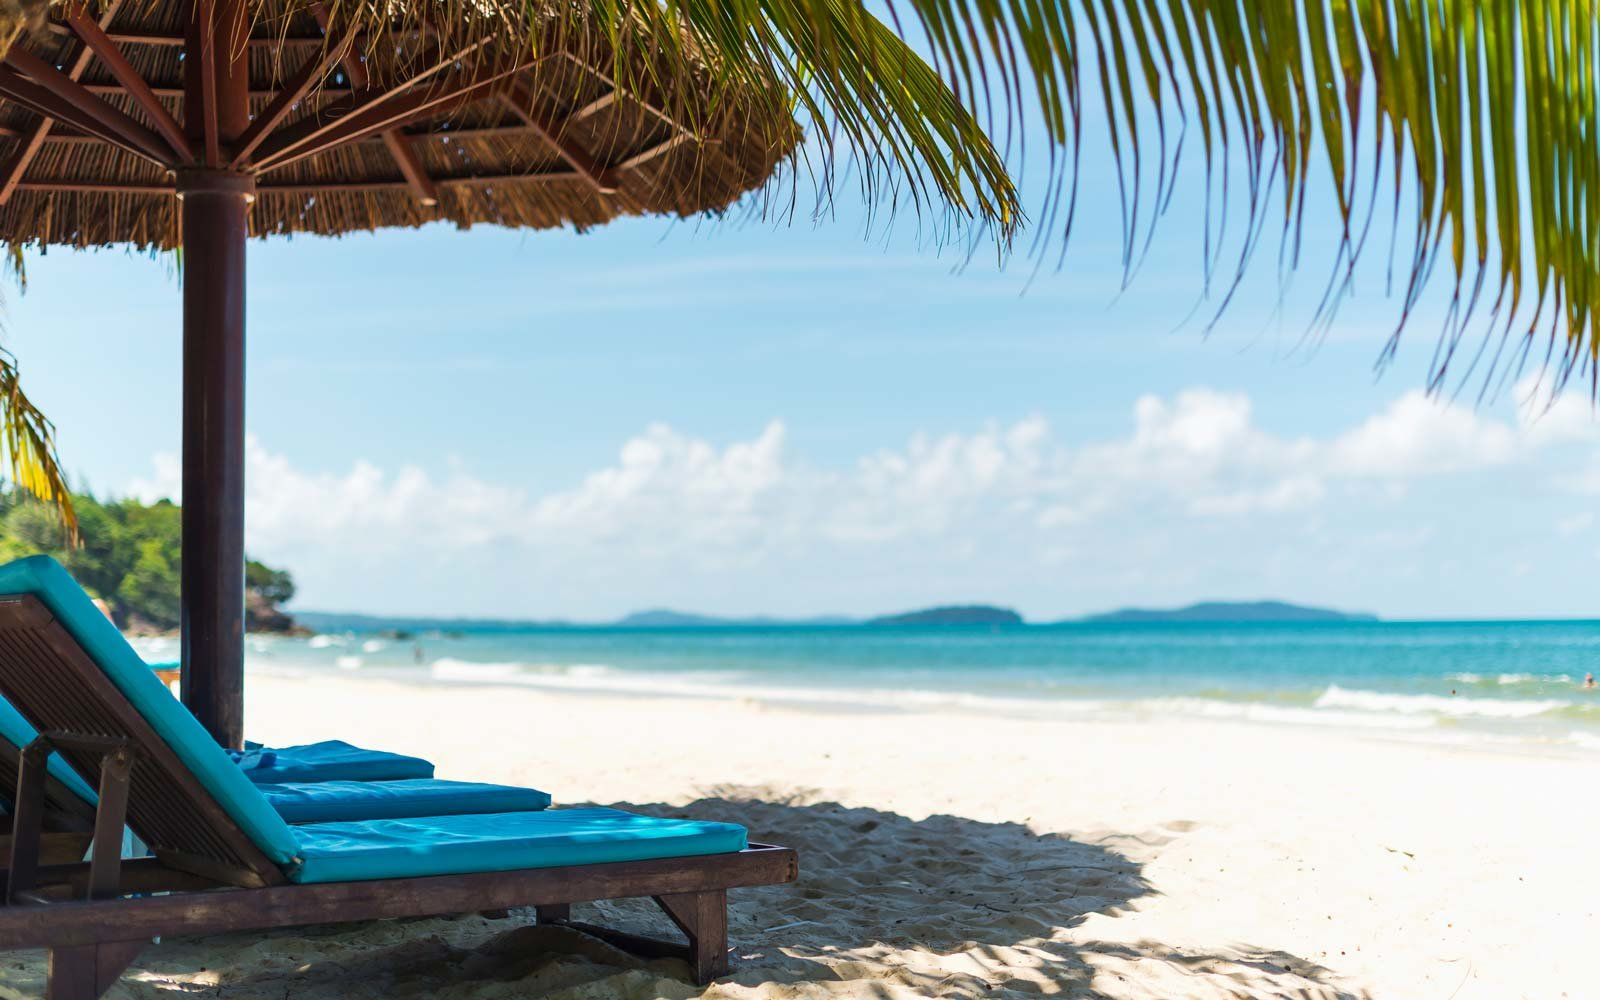 5 Countries Where You Can Retire by the Beach for Less Than $1,500 a Month